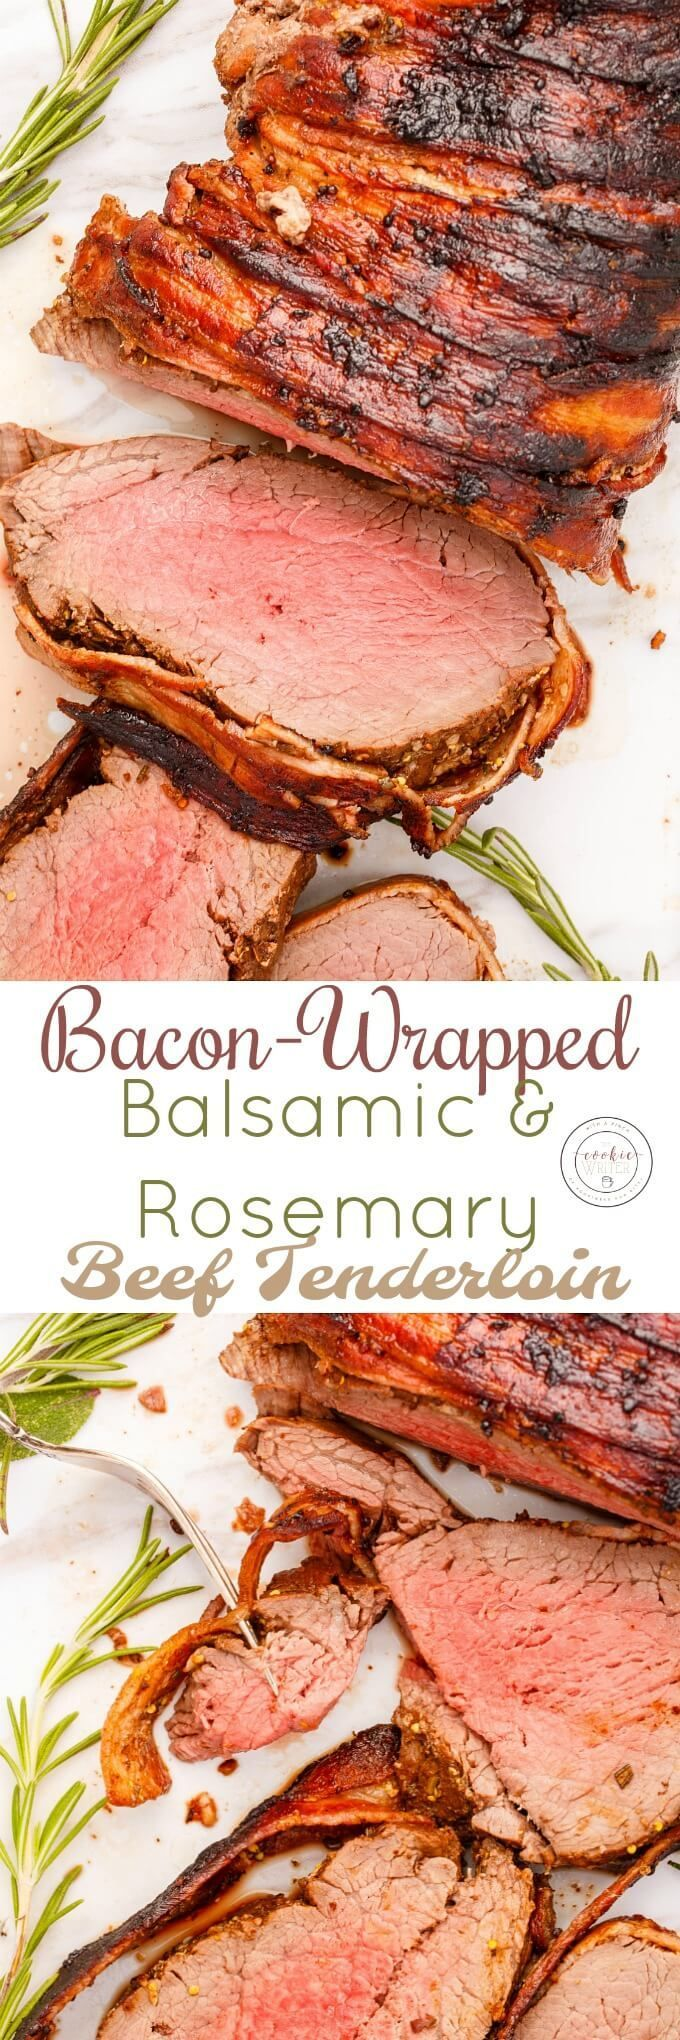 Bacon-Wrapped Balsamic and Rosemary Beef Tenderloin | http://thecookiewriter.com | @thecookiewriter | Recipes don't have to be complicated to be good! Cooked in the oven with a simple marinade, this roast is so gourmet and well worth every penny! Save the tips and other goodies to make stewing beef! Completely gluten-free, too.